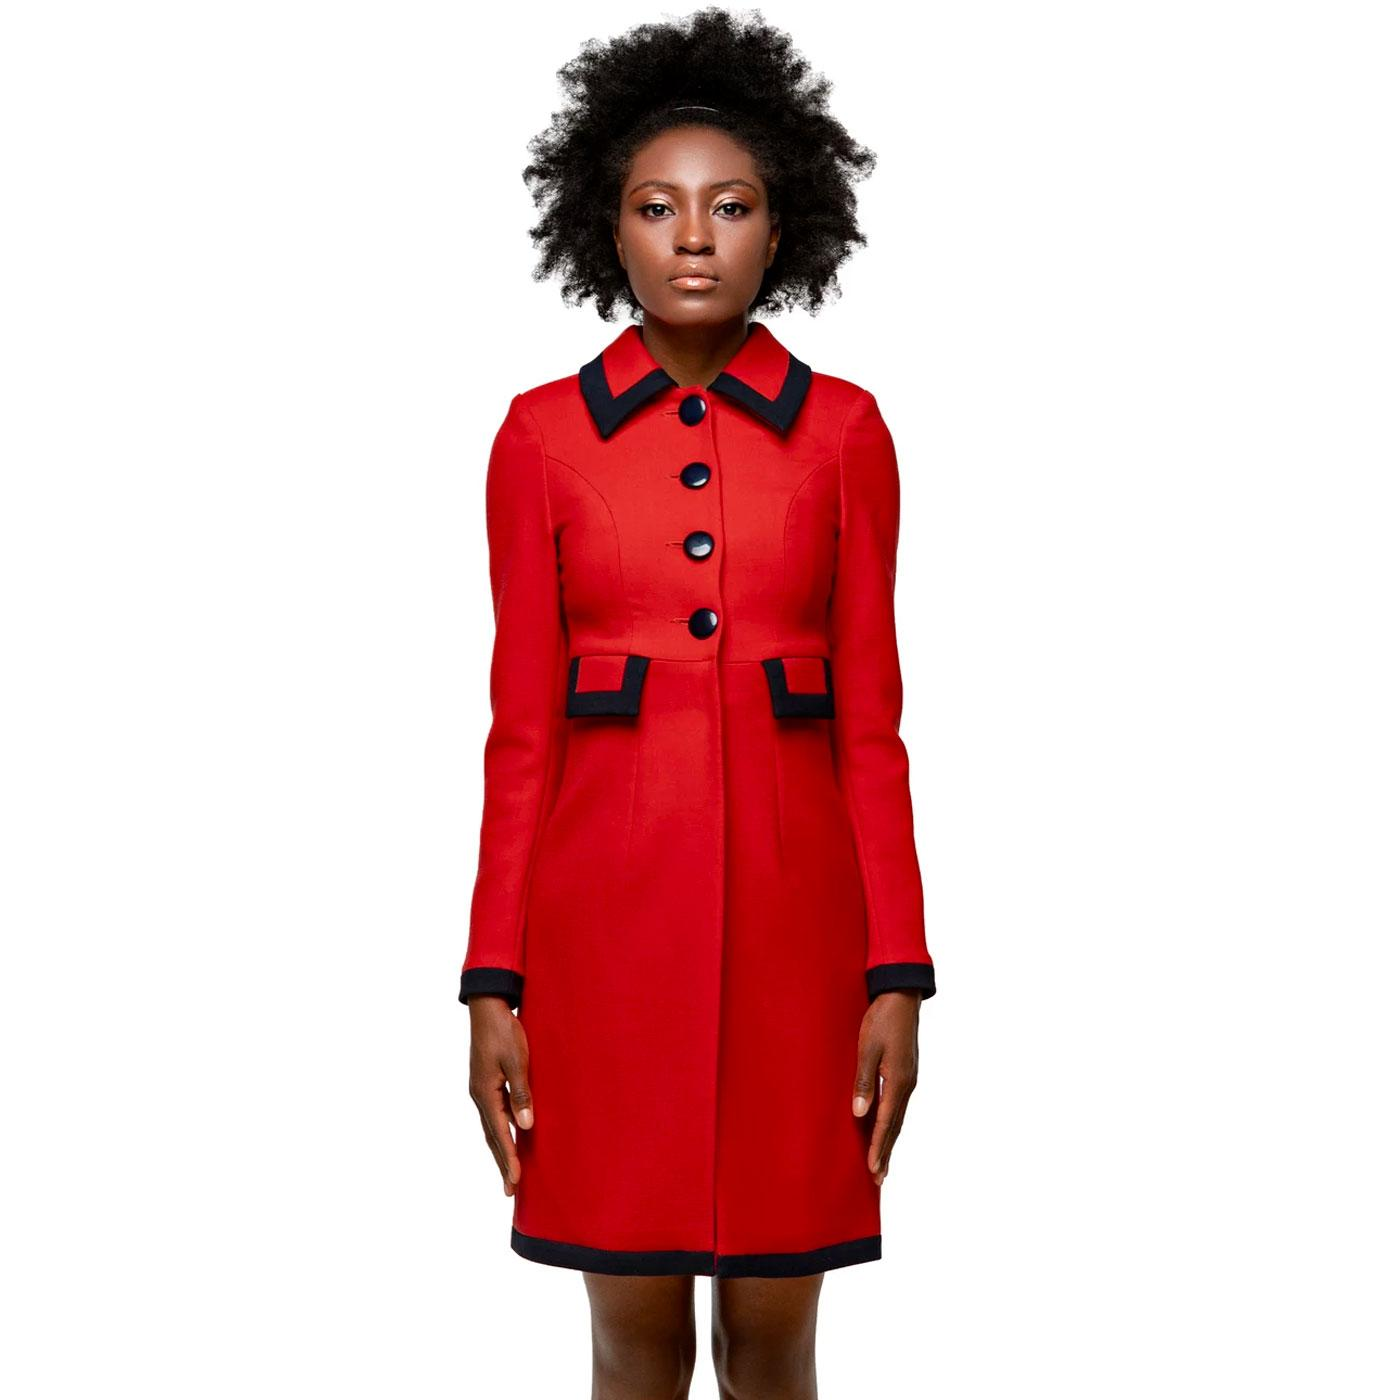 MARMALADE Retro Autumn Coat With Faux Pockets